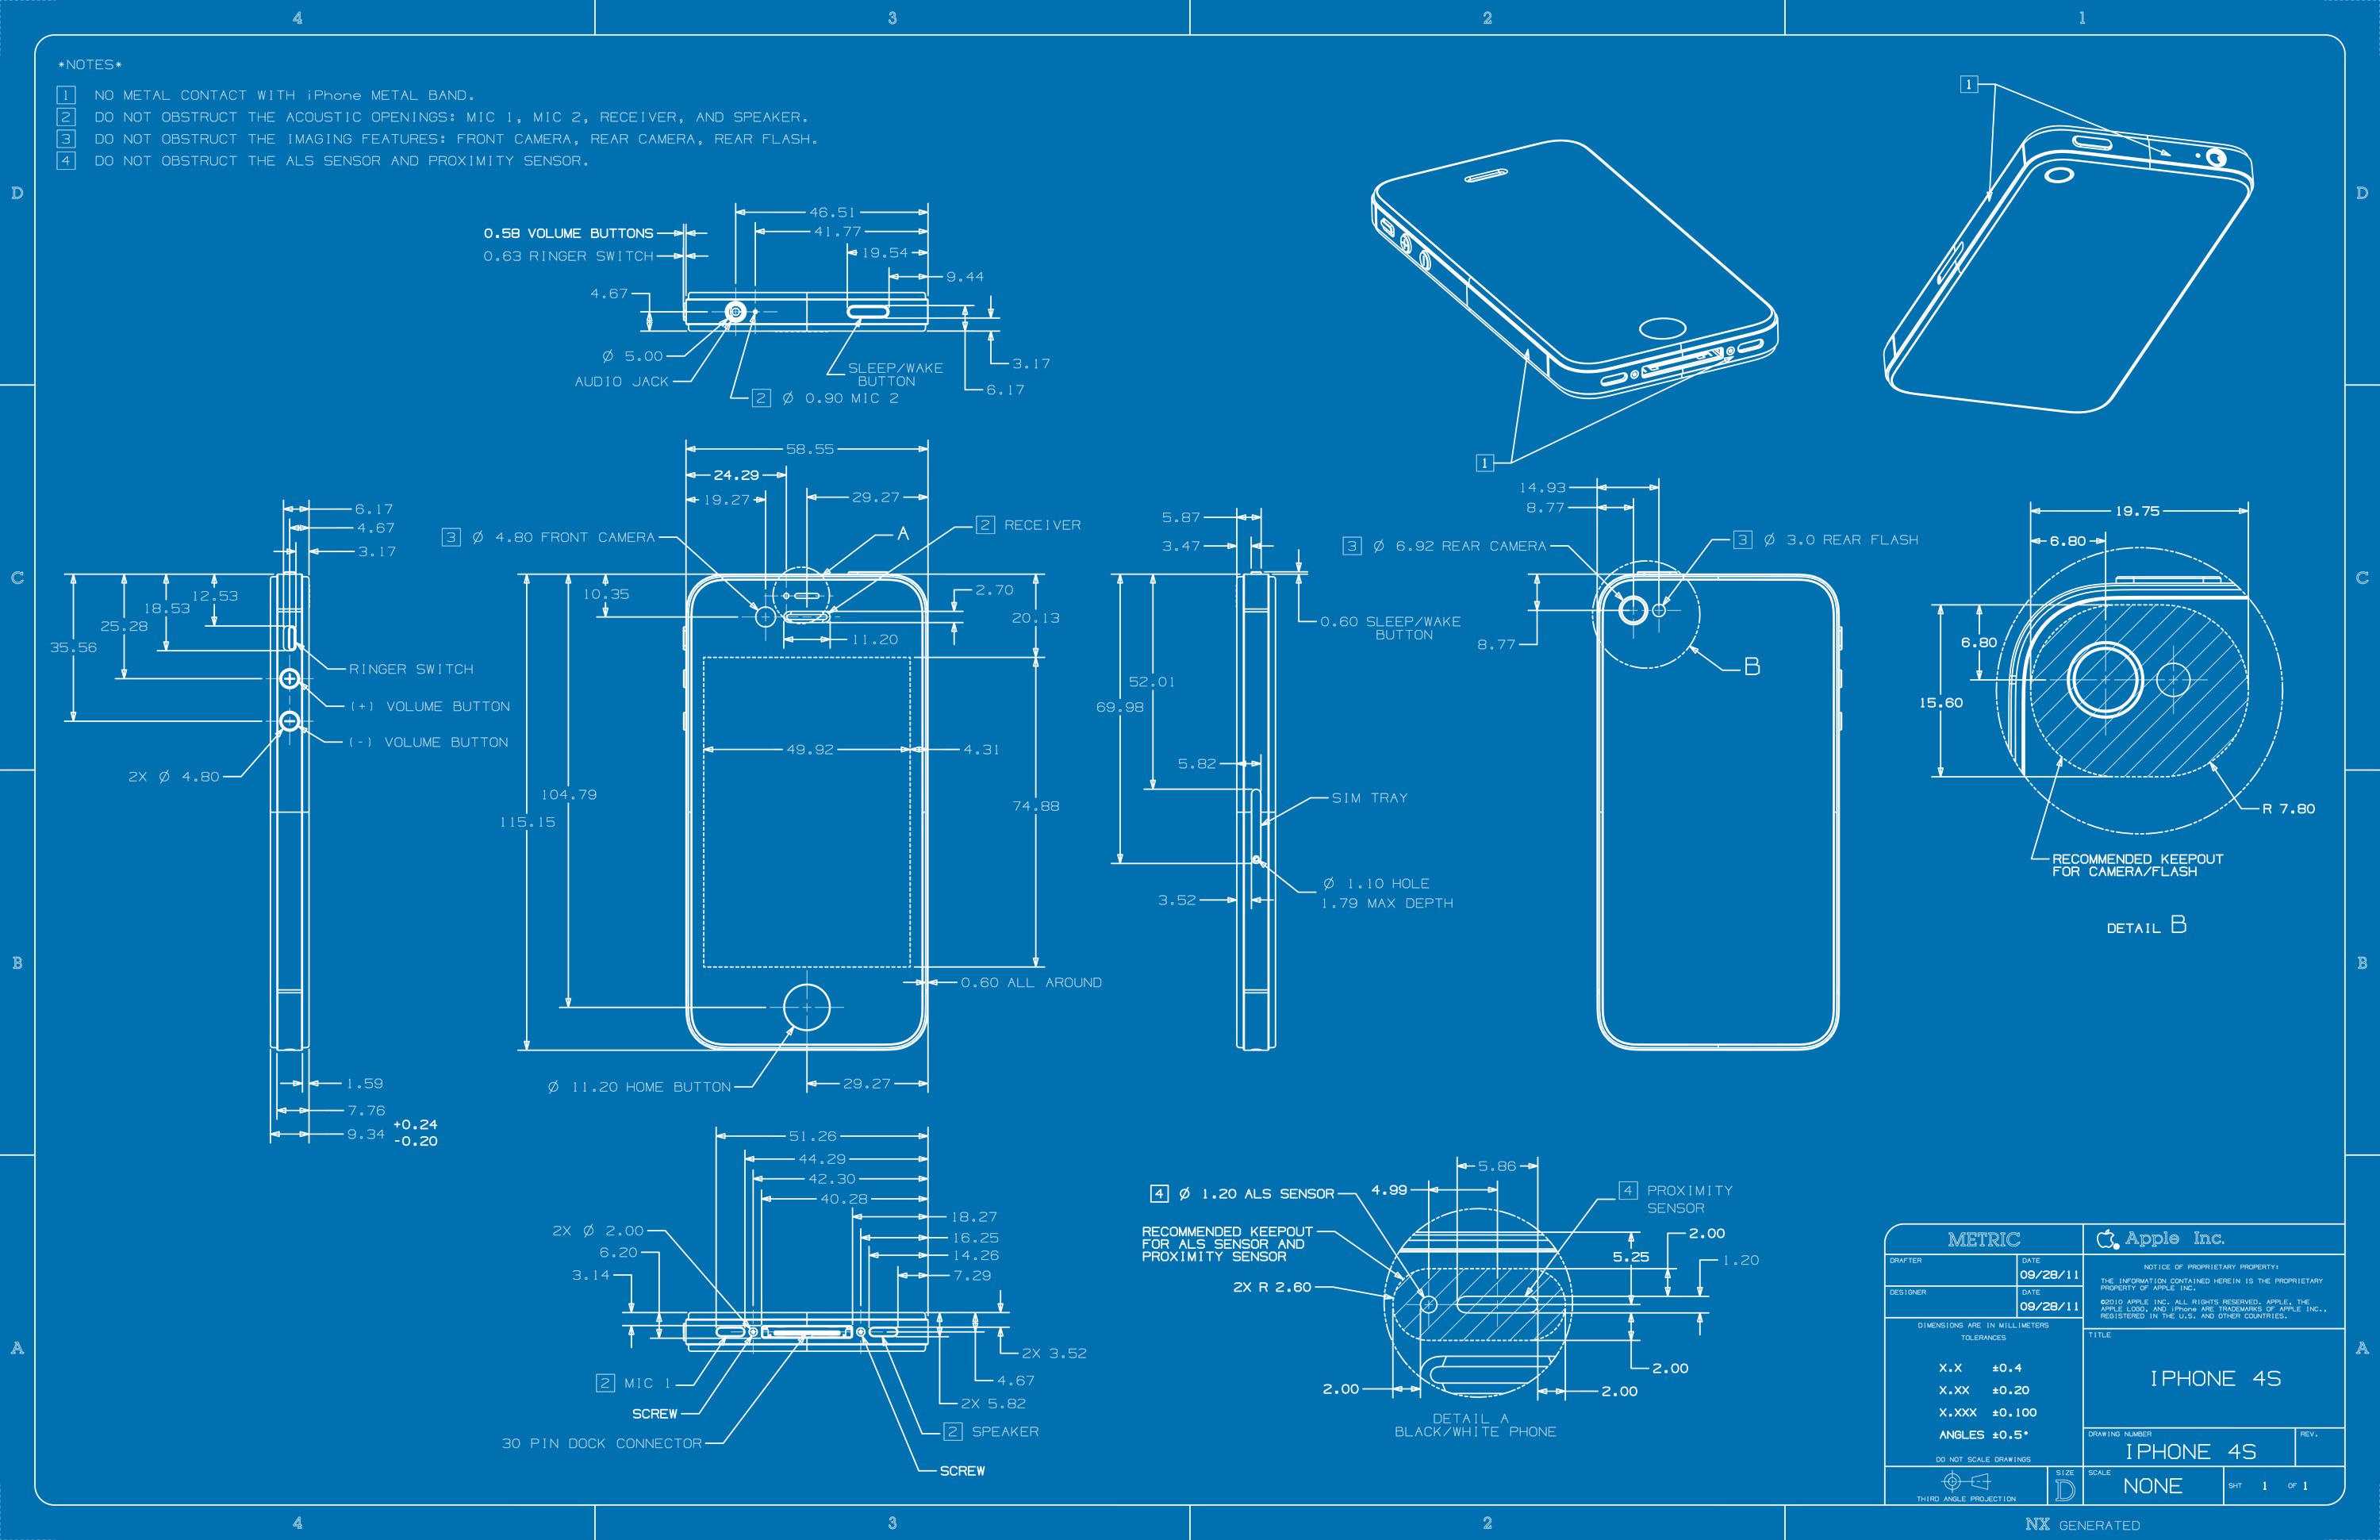 Mac spoilers iphone dimensions blueprints wallpaper 120157 apple inc blueprint iphone iphone case making wallpaper malvernweather Gallery